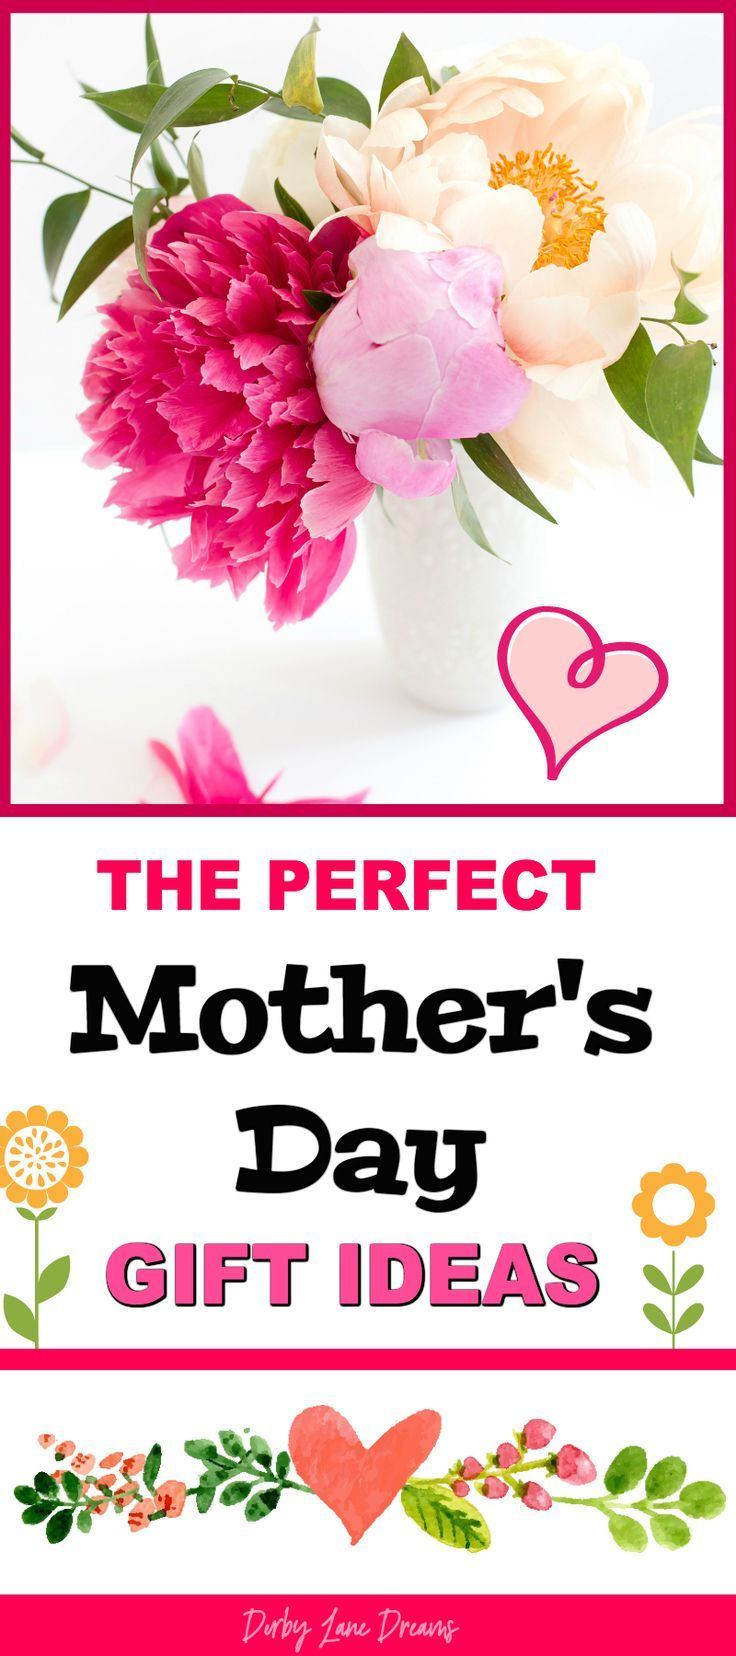 Thoughtful And Sweet Gift Ideas For Every Budget From Amazon Fast Free Delivery On Prime MothersDay Mom Momlife